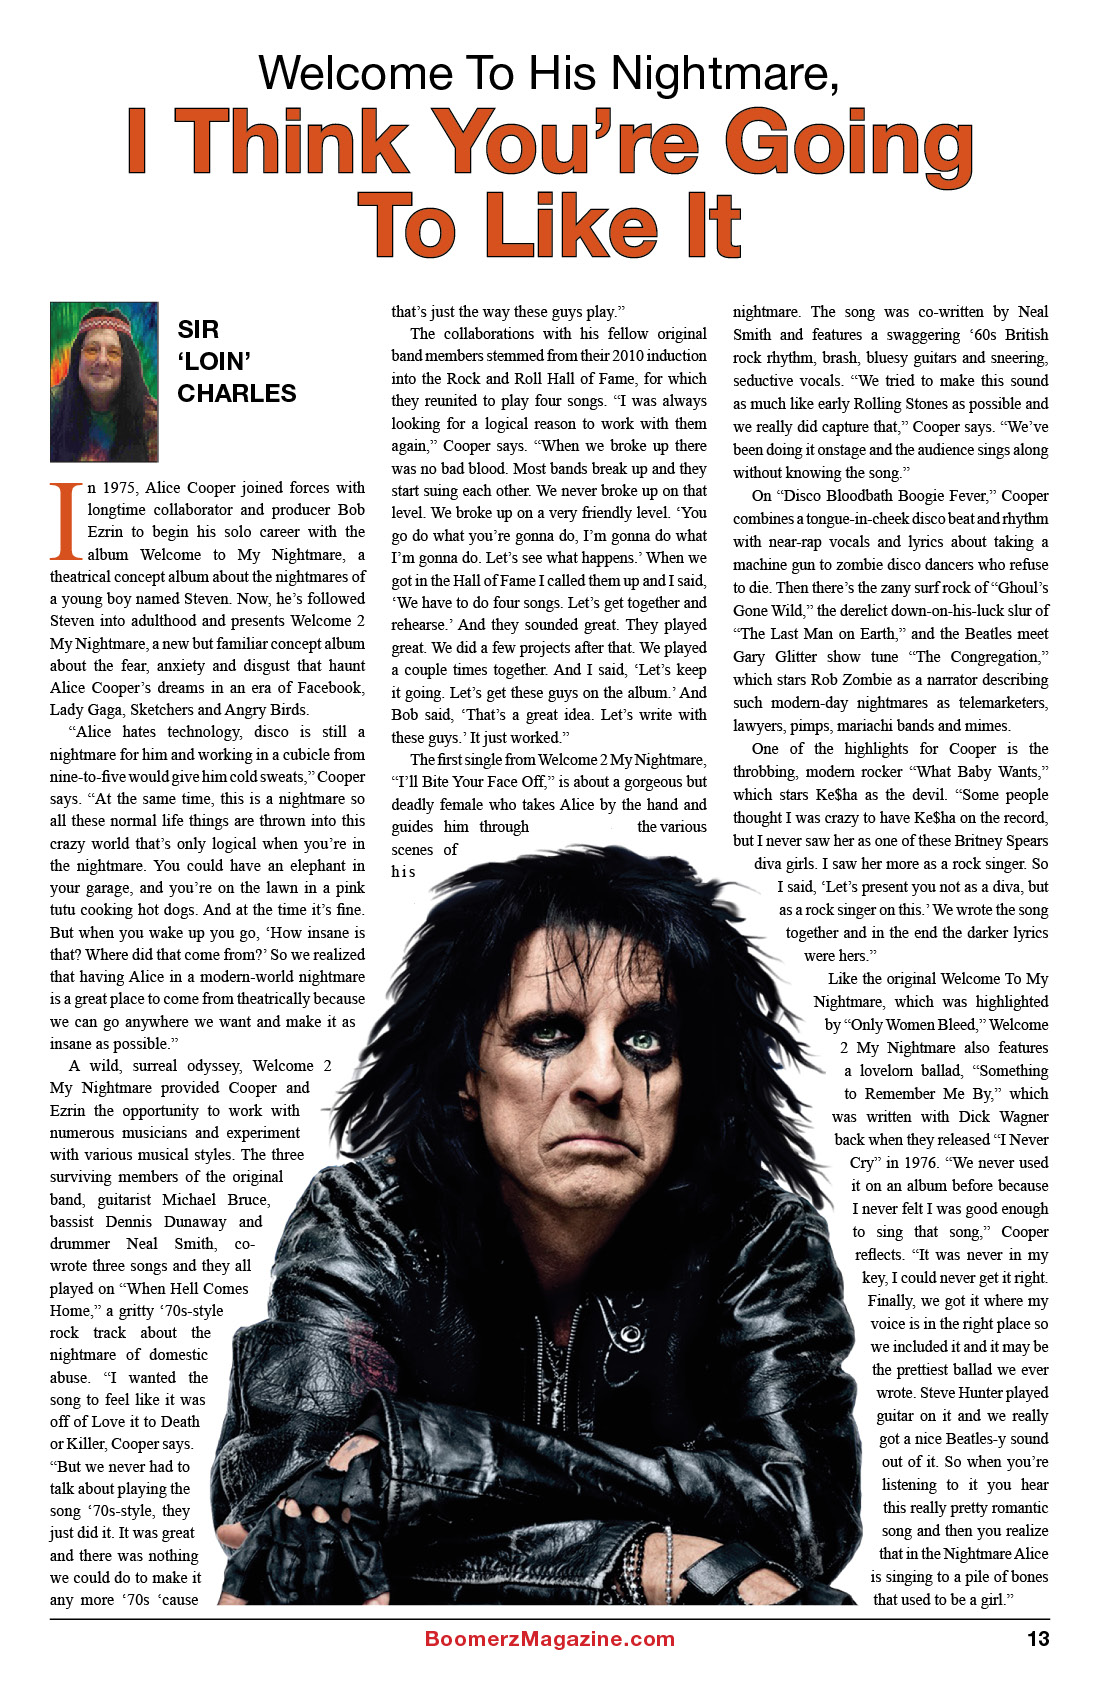 2018 October Boomerz Magazine Page 13 Alice Cooper Welcome to his Nightmare